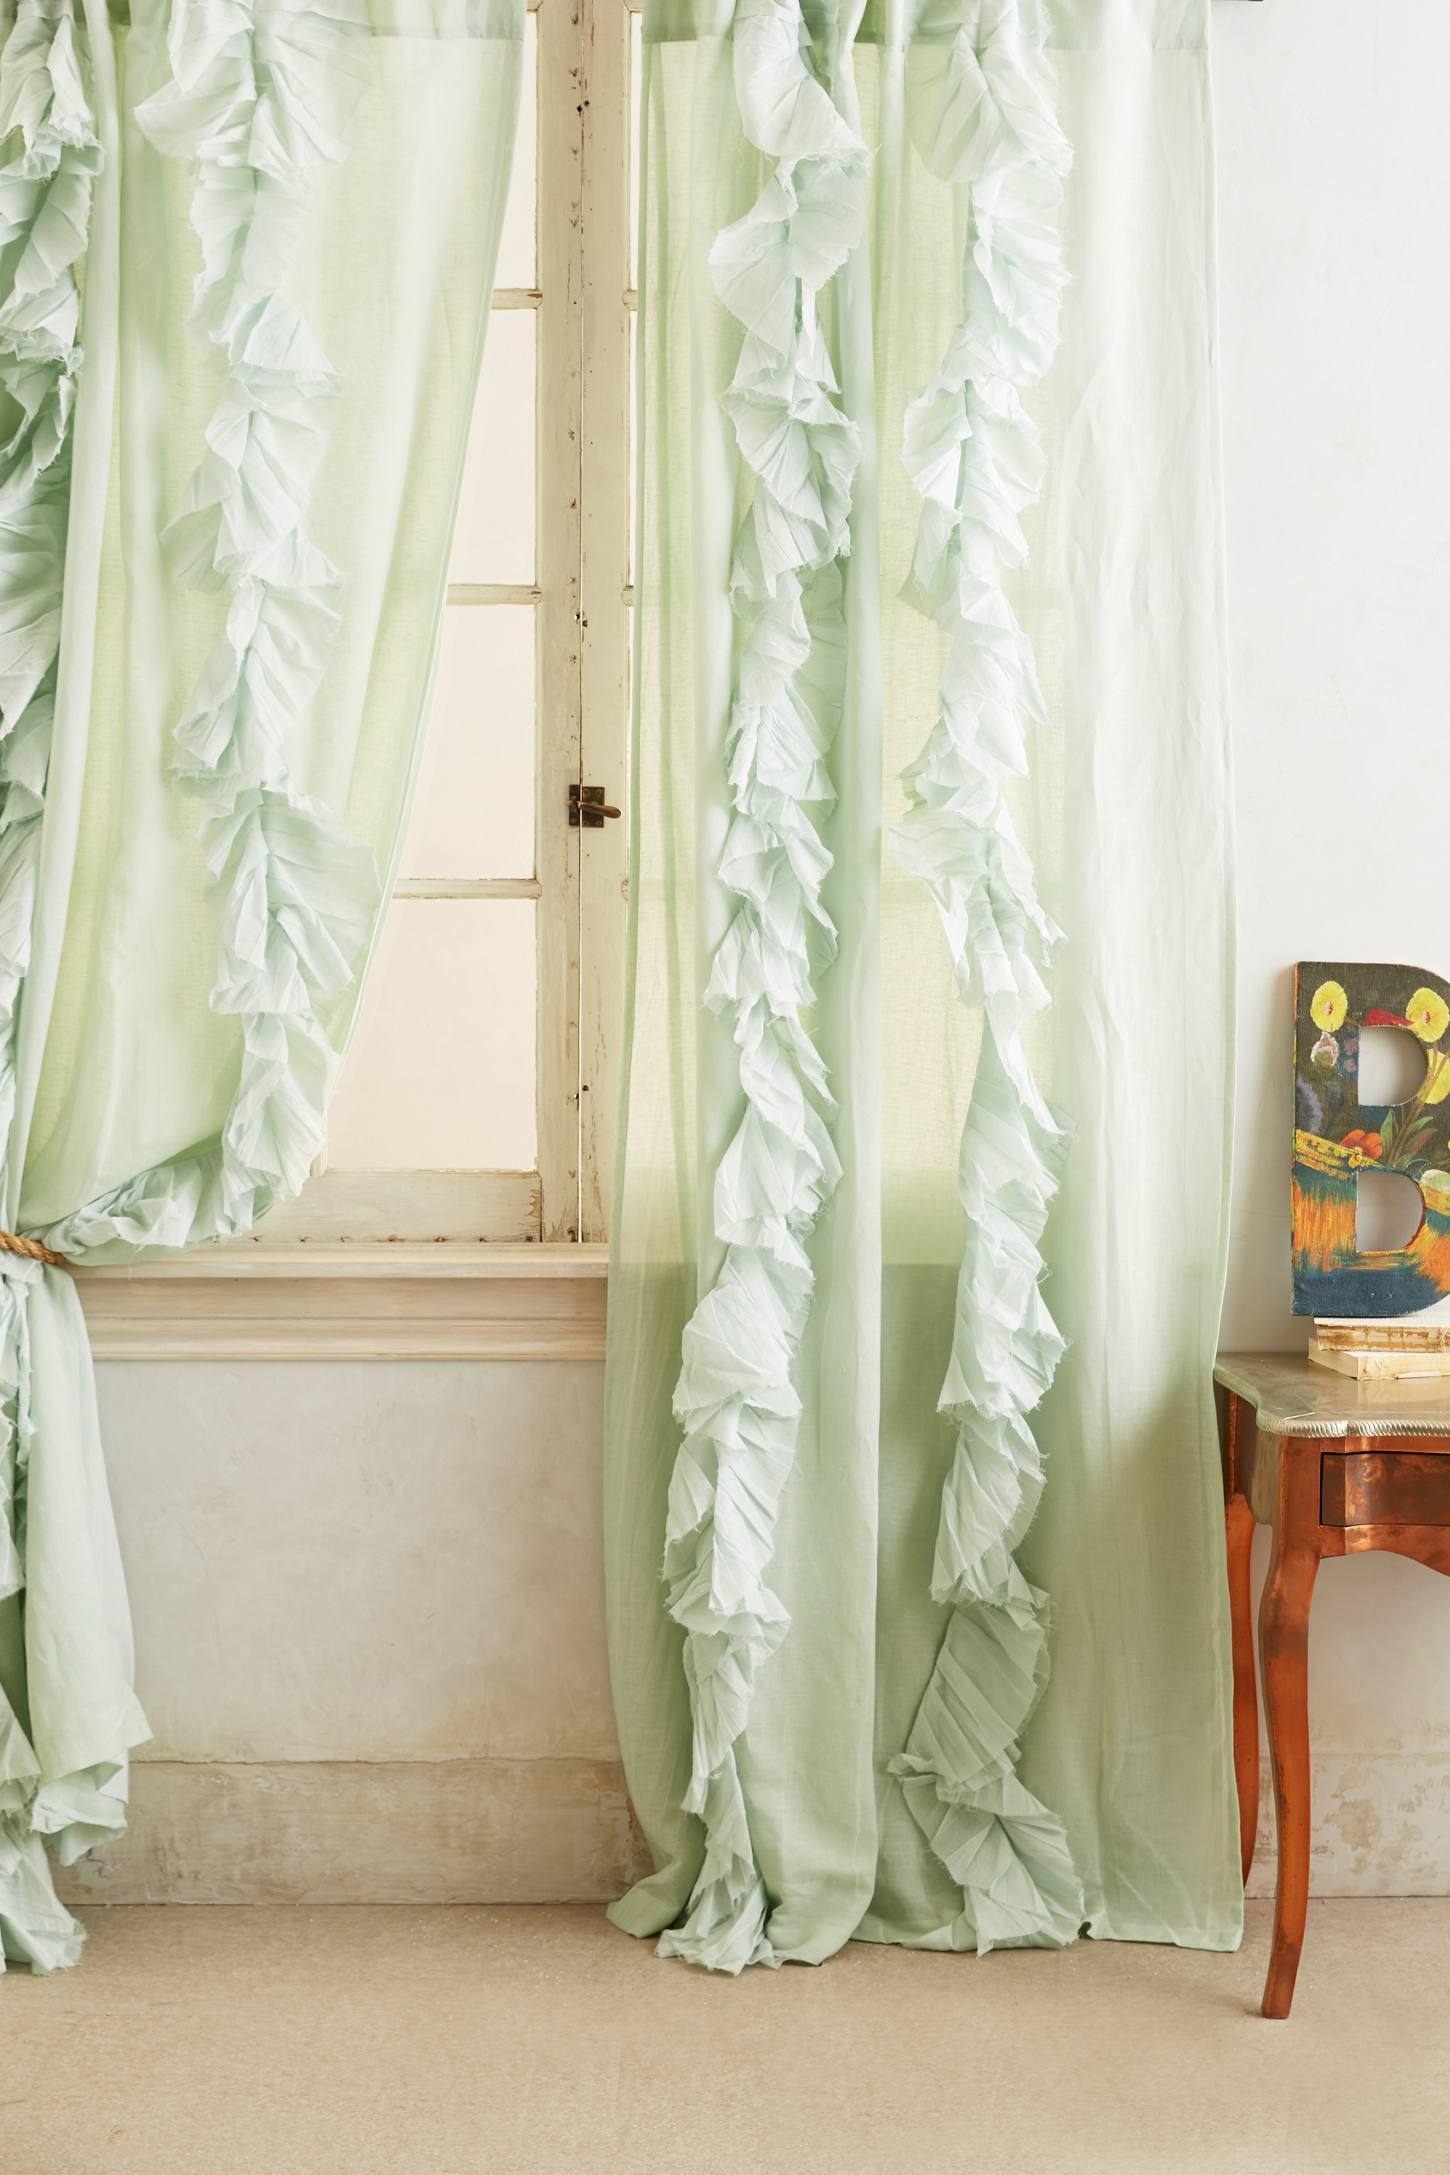 Slide View: 1: Wandering Pleats Curtain